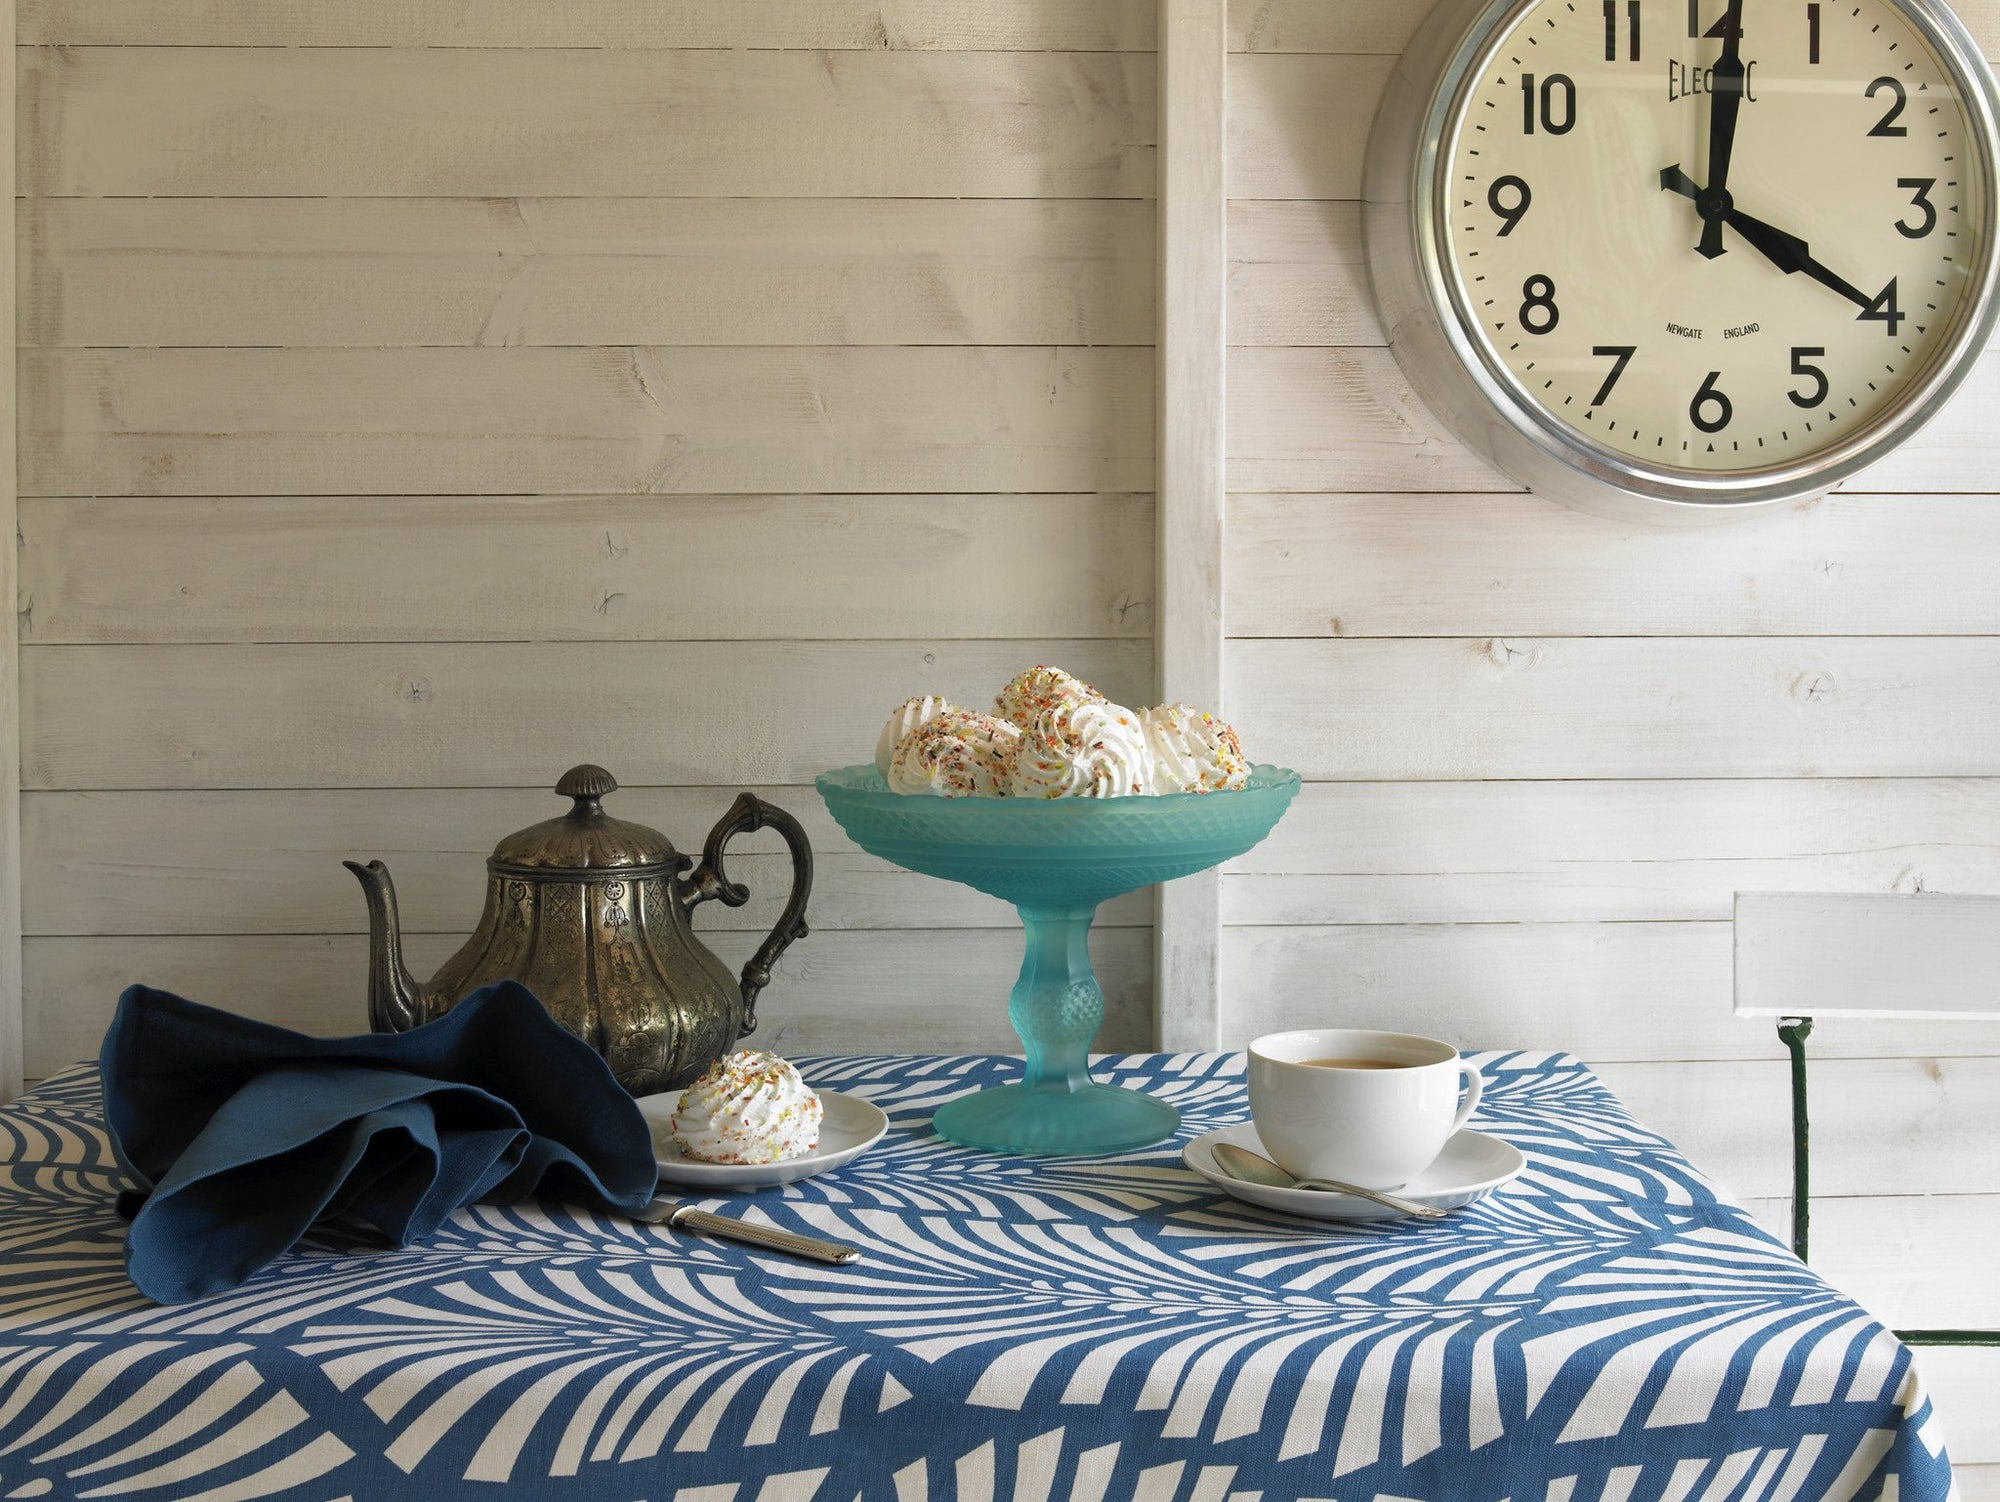 Cotton linen tablecloths, napkins and table runners in great shades of blue. Ships from Canada worldwide including the USA